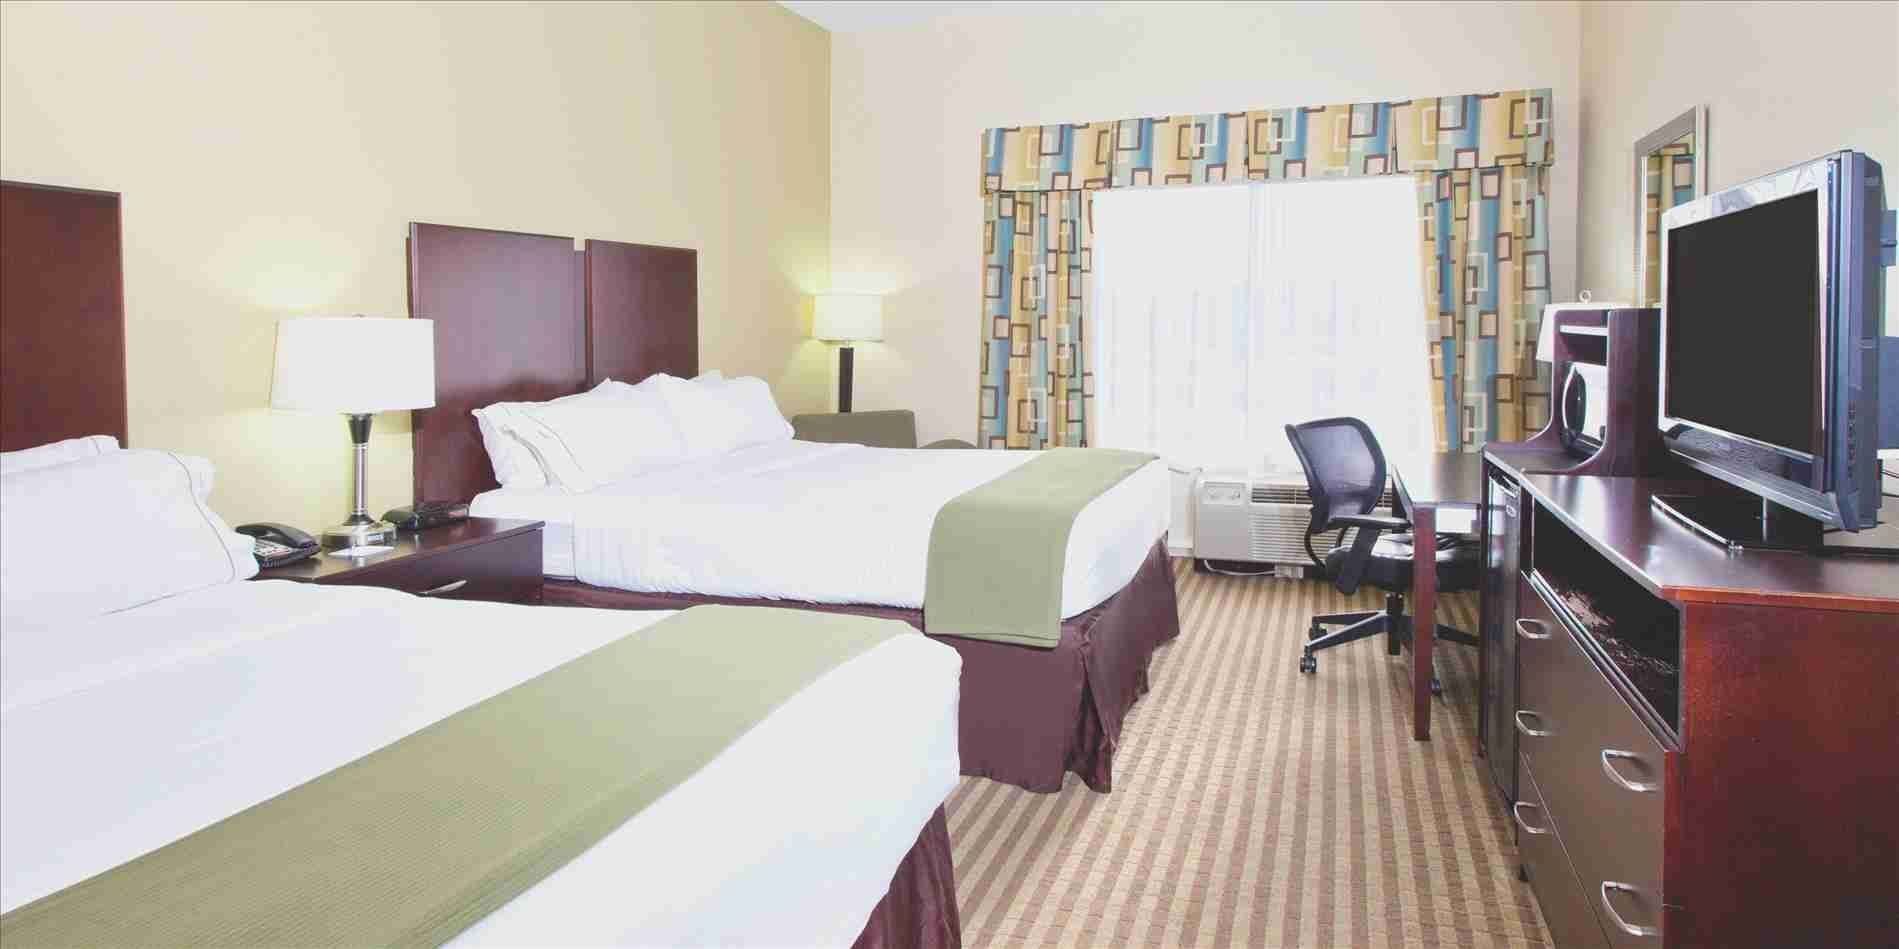 Best 2 Bedroom Hotels In Myrtle Beach Sc Www Resnooze Com With Pictures